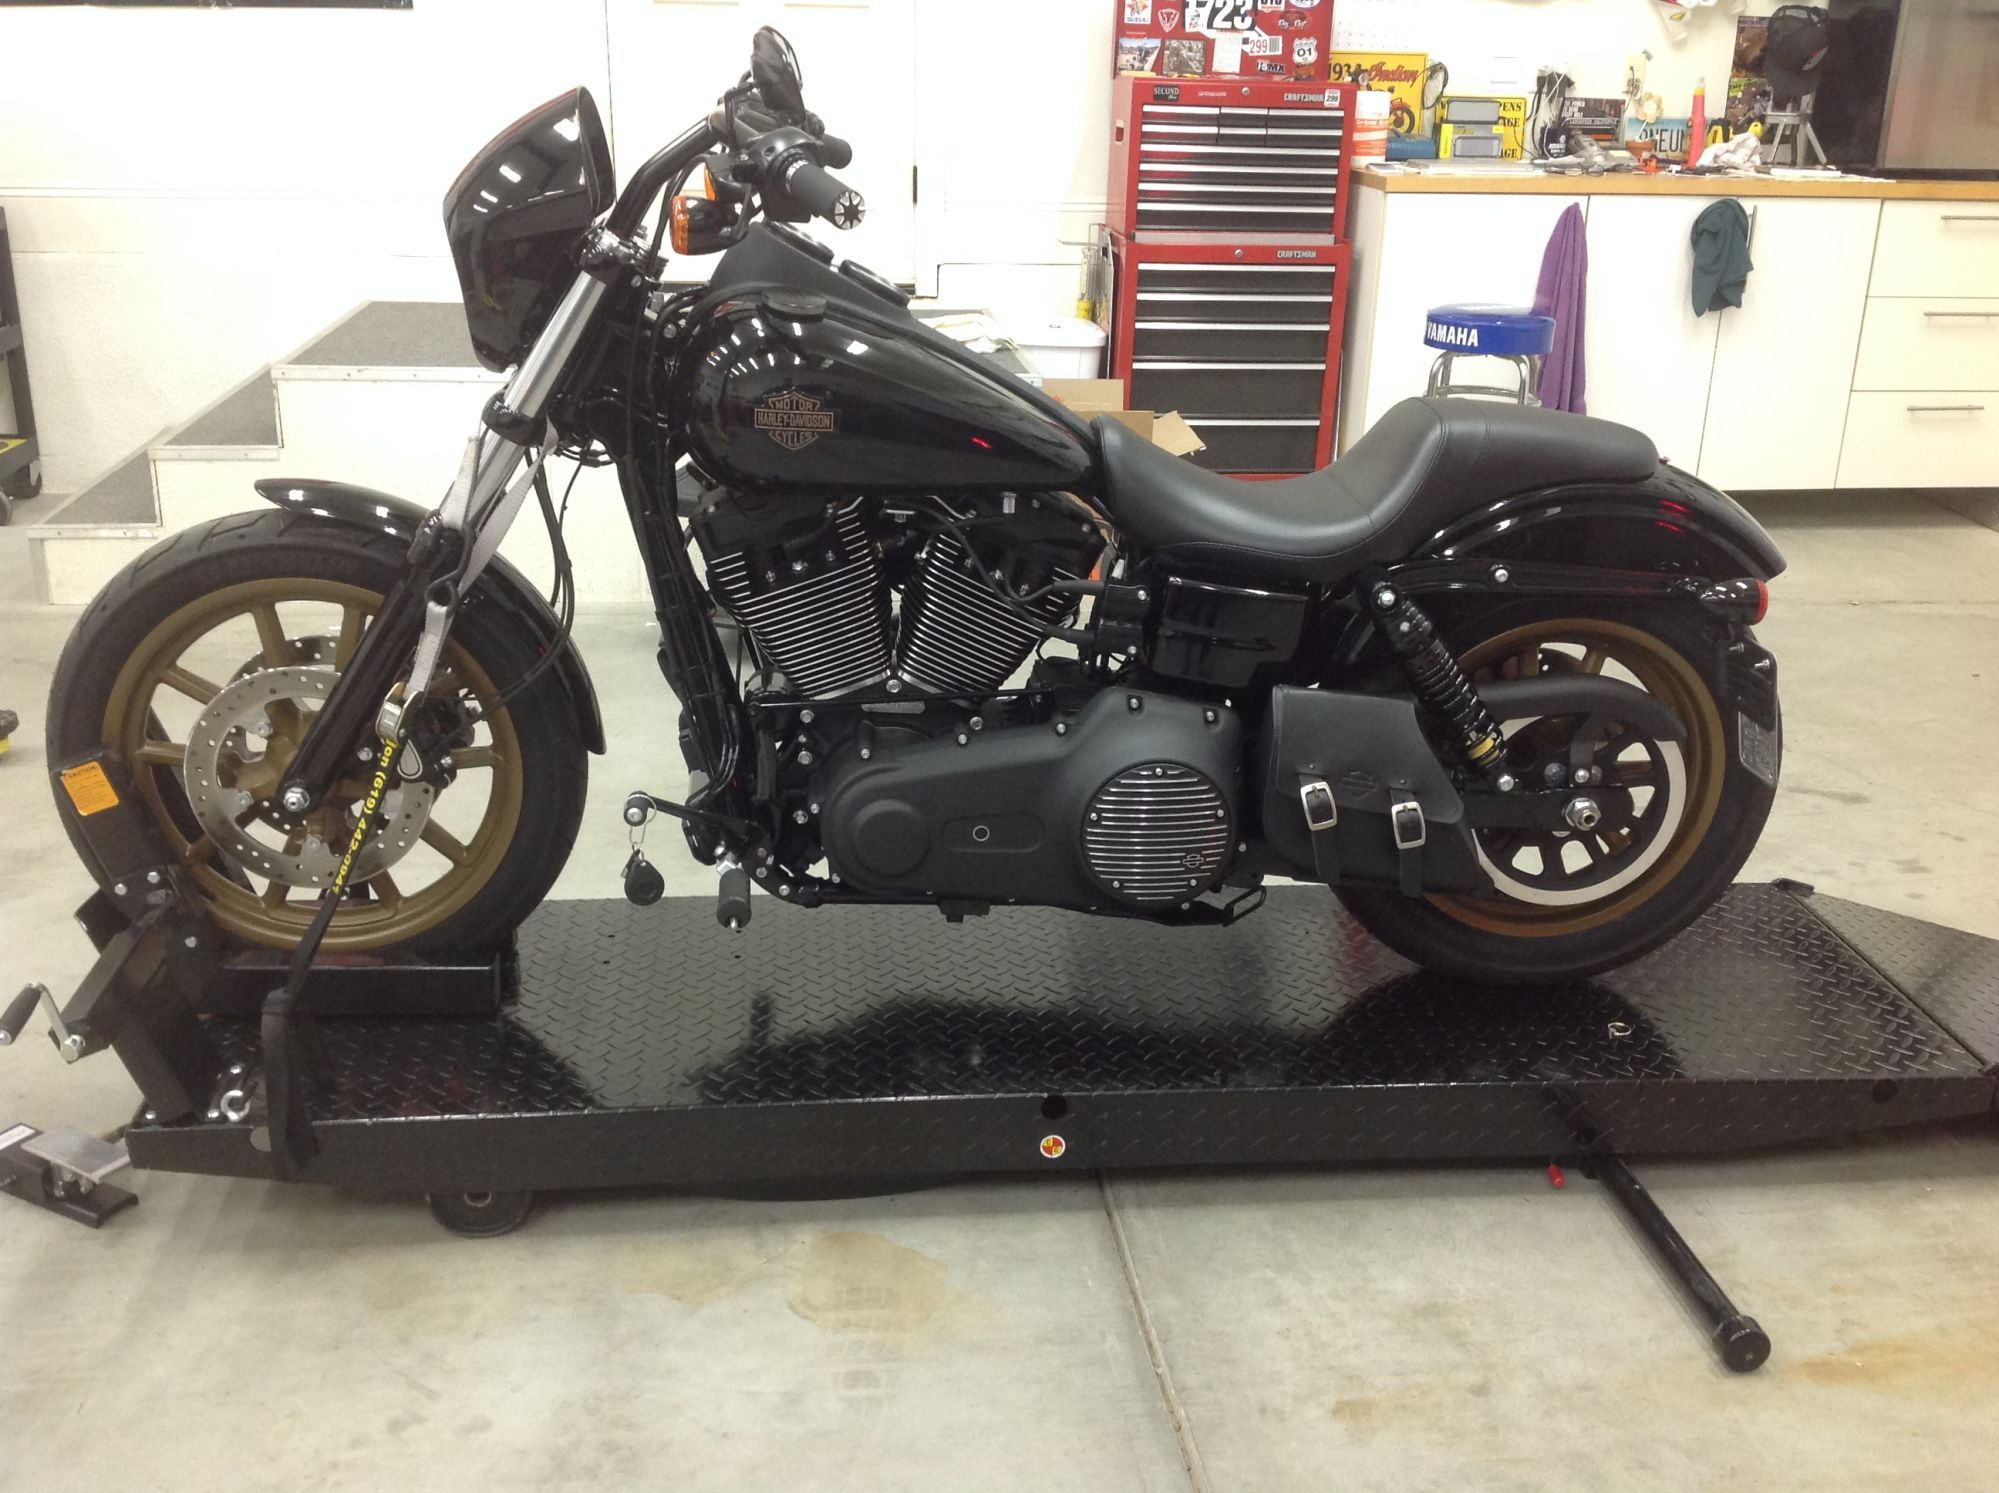 New Low Rider S Page 58 Harley Davidson Forums Harley Davidson Forum New Harley Davidson Harley